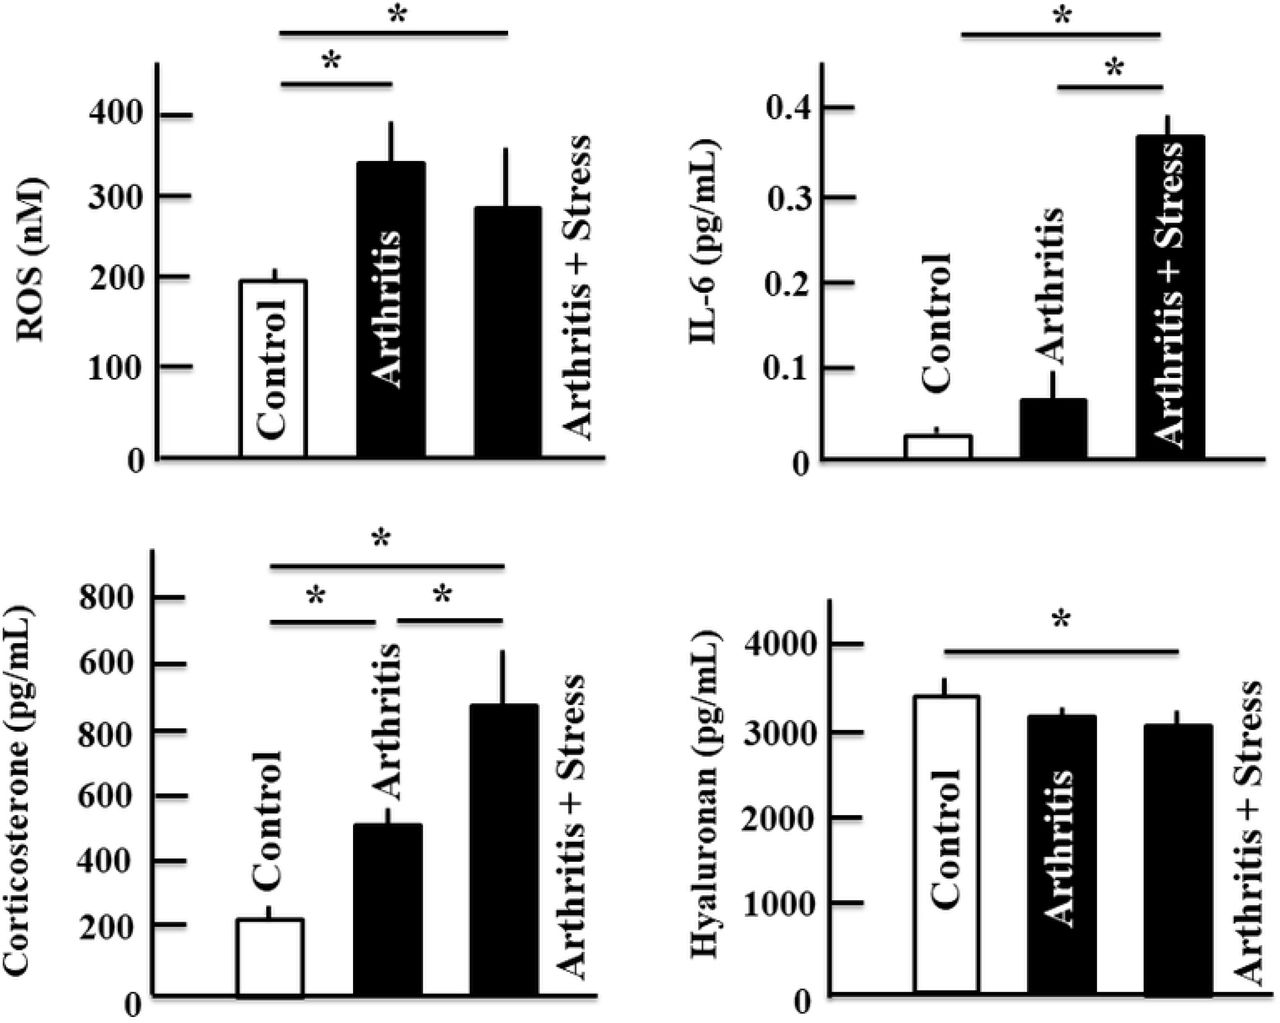 Effects of water immersion stress treatment on the plasma levels of ROS, IL-6, corticosterone, and <t>hyaluronan</t> in arthritic mice. Plasma levels of these proteins were assessed by enzyme-linked immunosorbent assay. Data are presented as means ± standard deviations (n = 5). * P